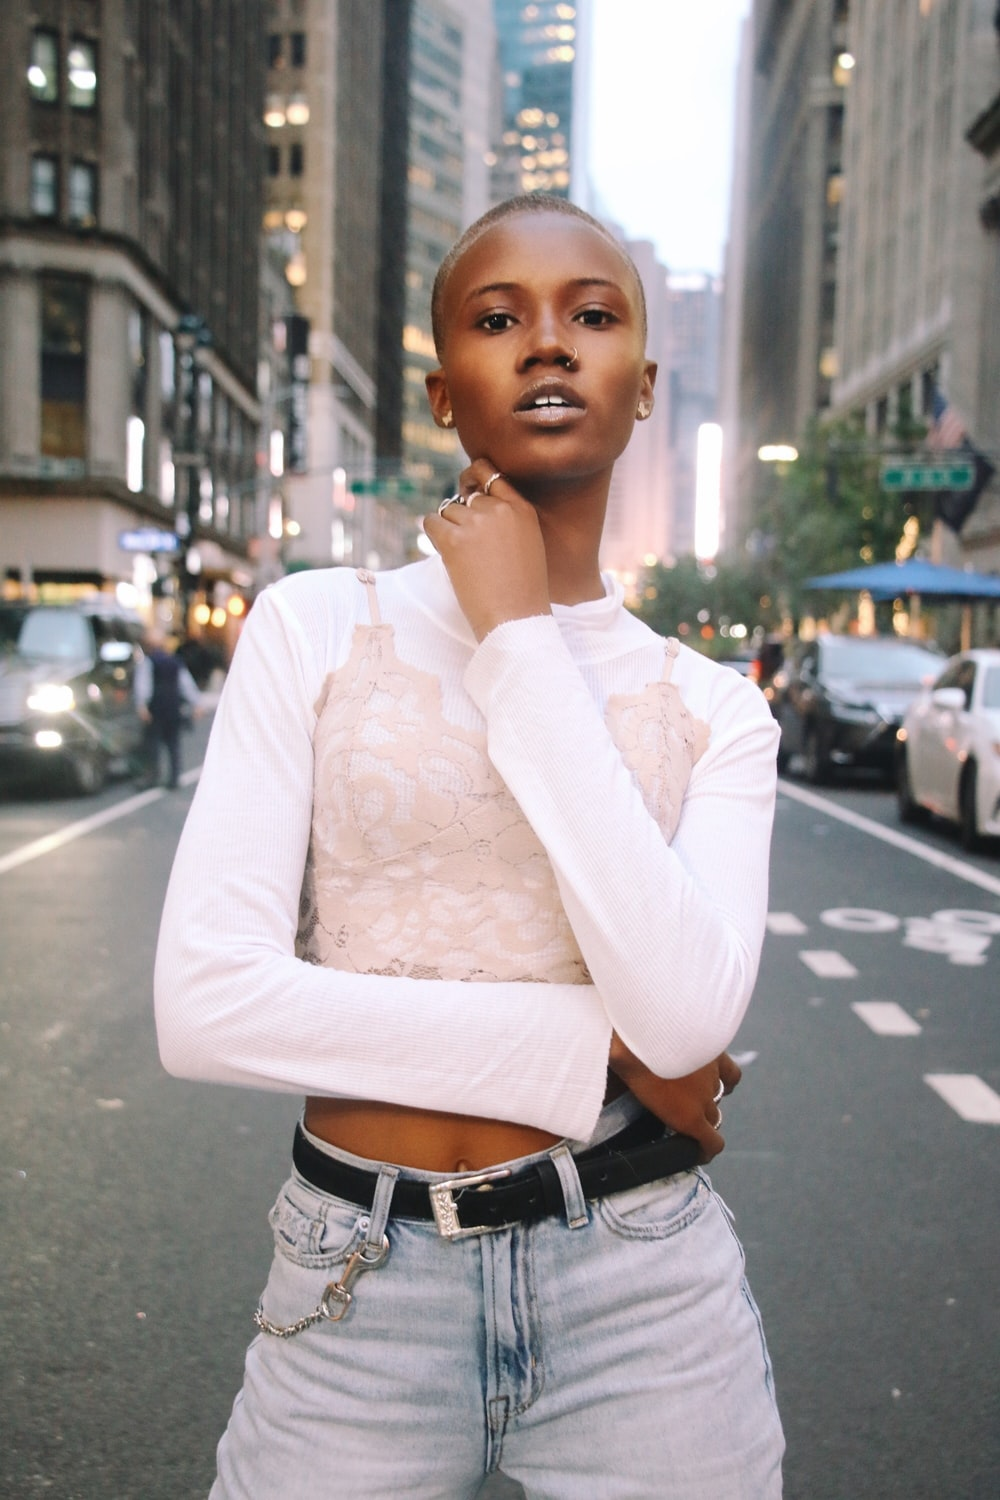 shallow focus photo of woman in white long-sleeved crop top